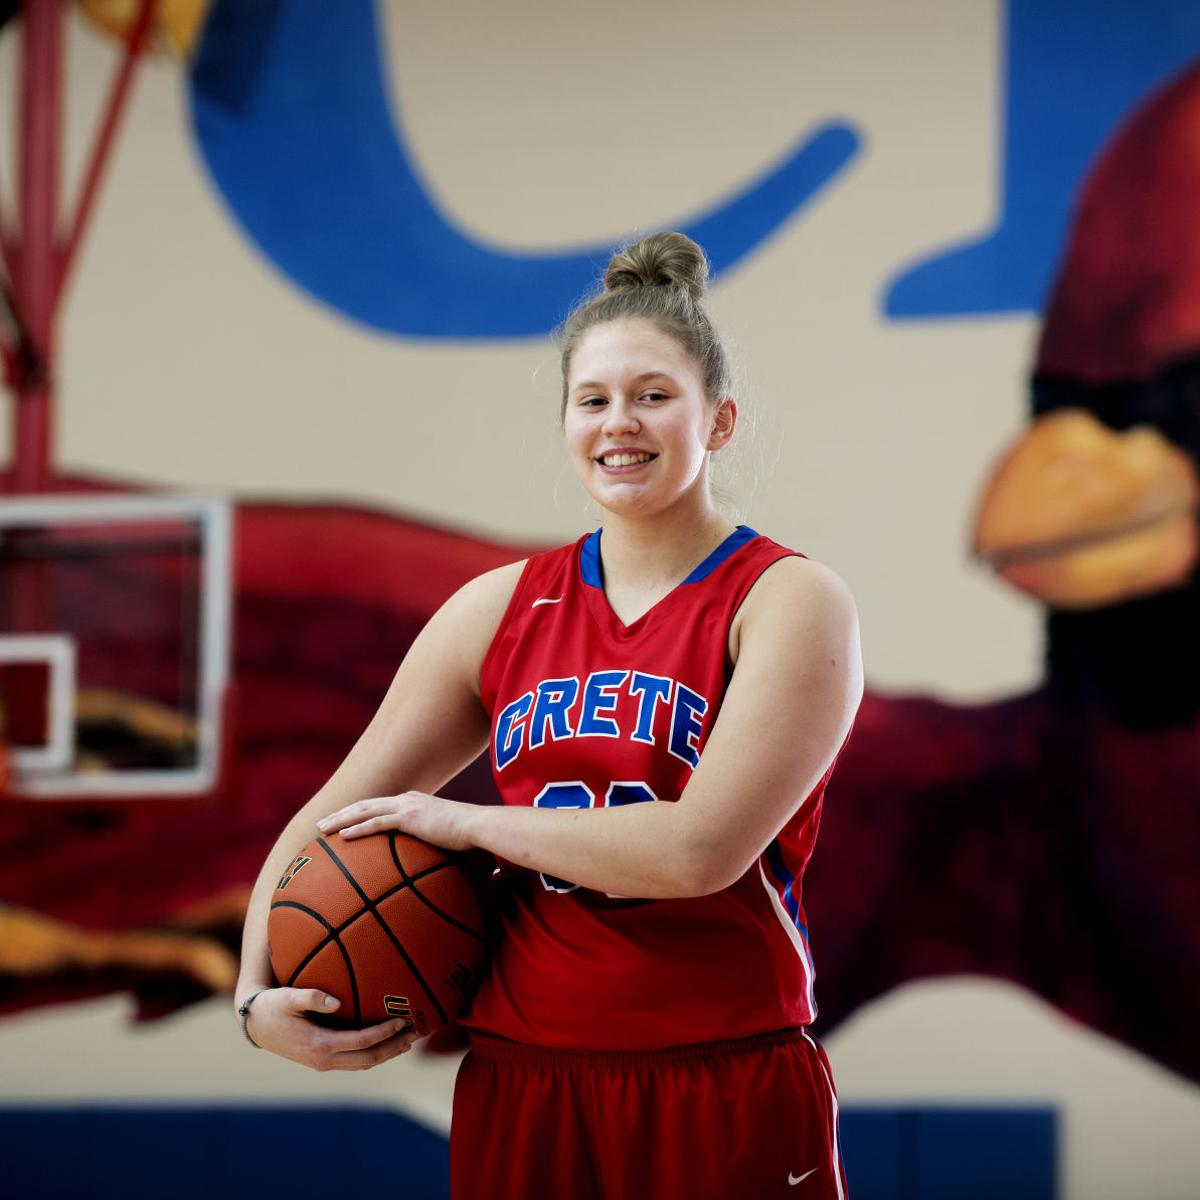 Sparked by Morgan Maly's vast skill set, Crete girls have